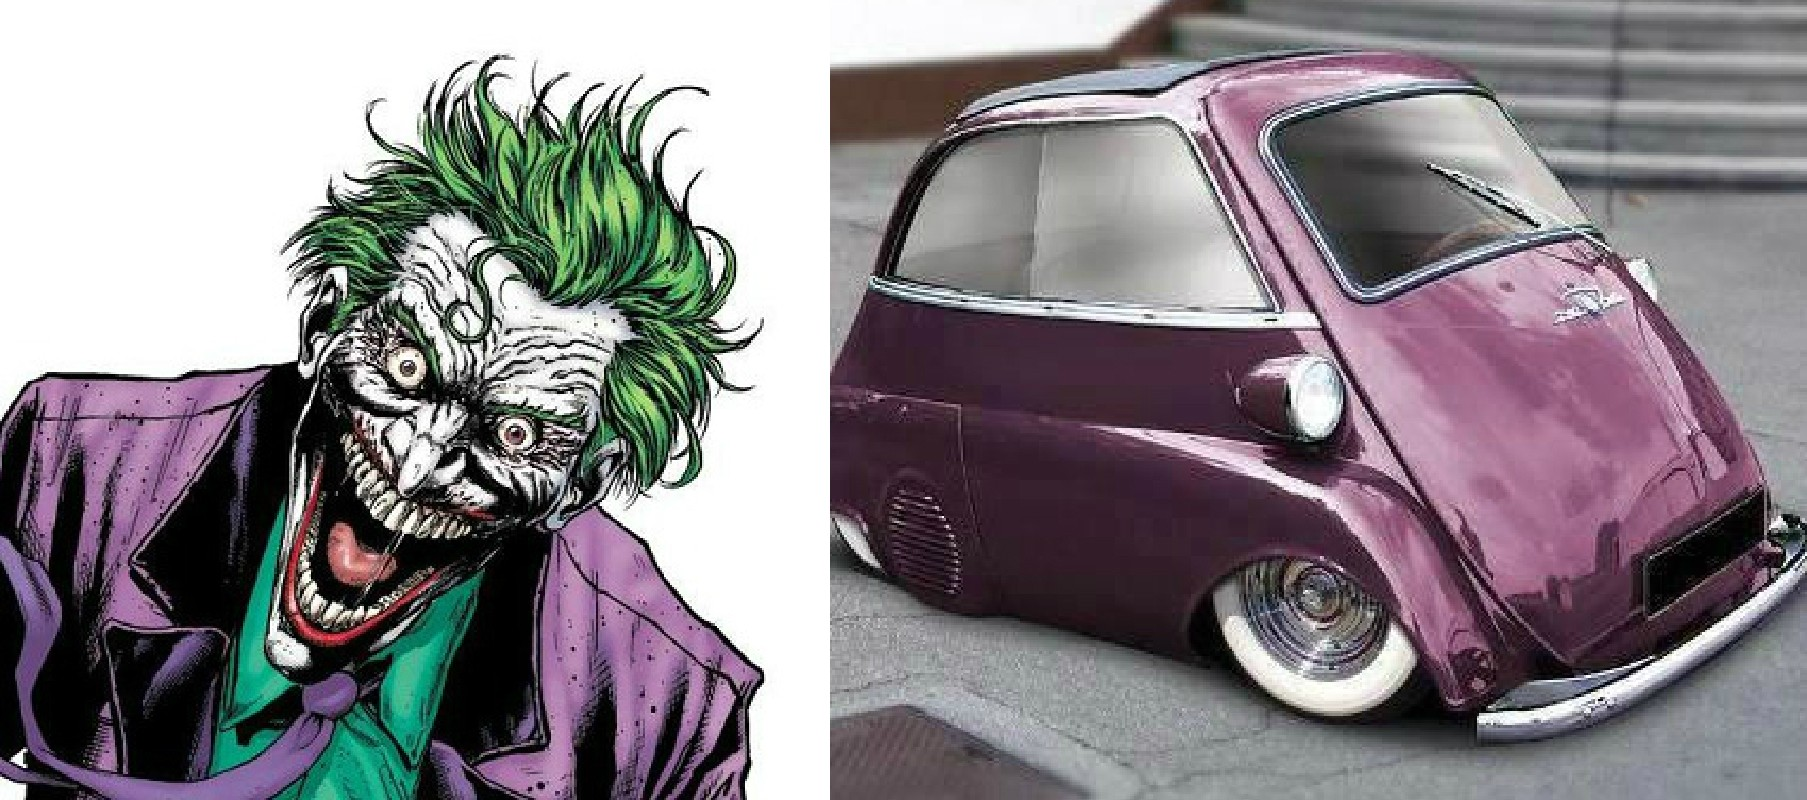 The Car Guys >> From Darth Vader to the Joker: What Car Would Your ...